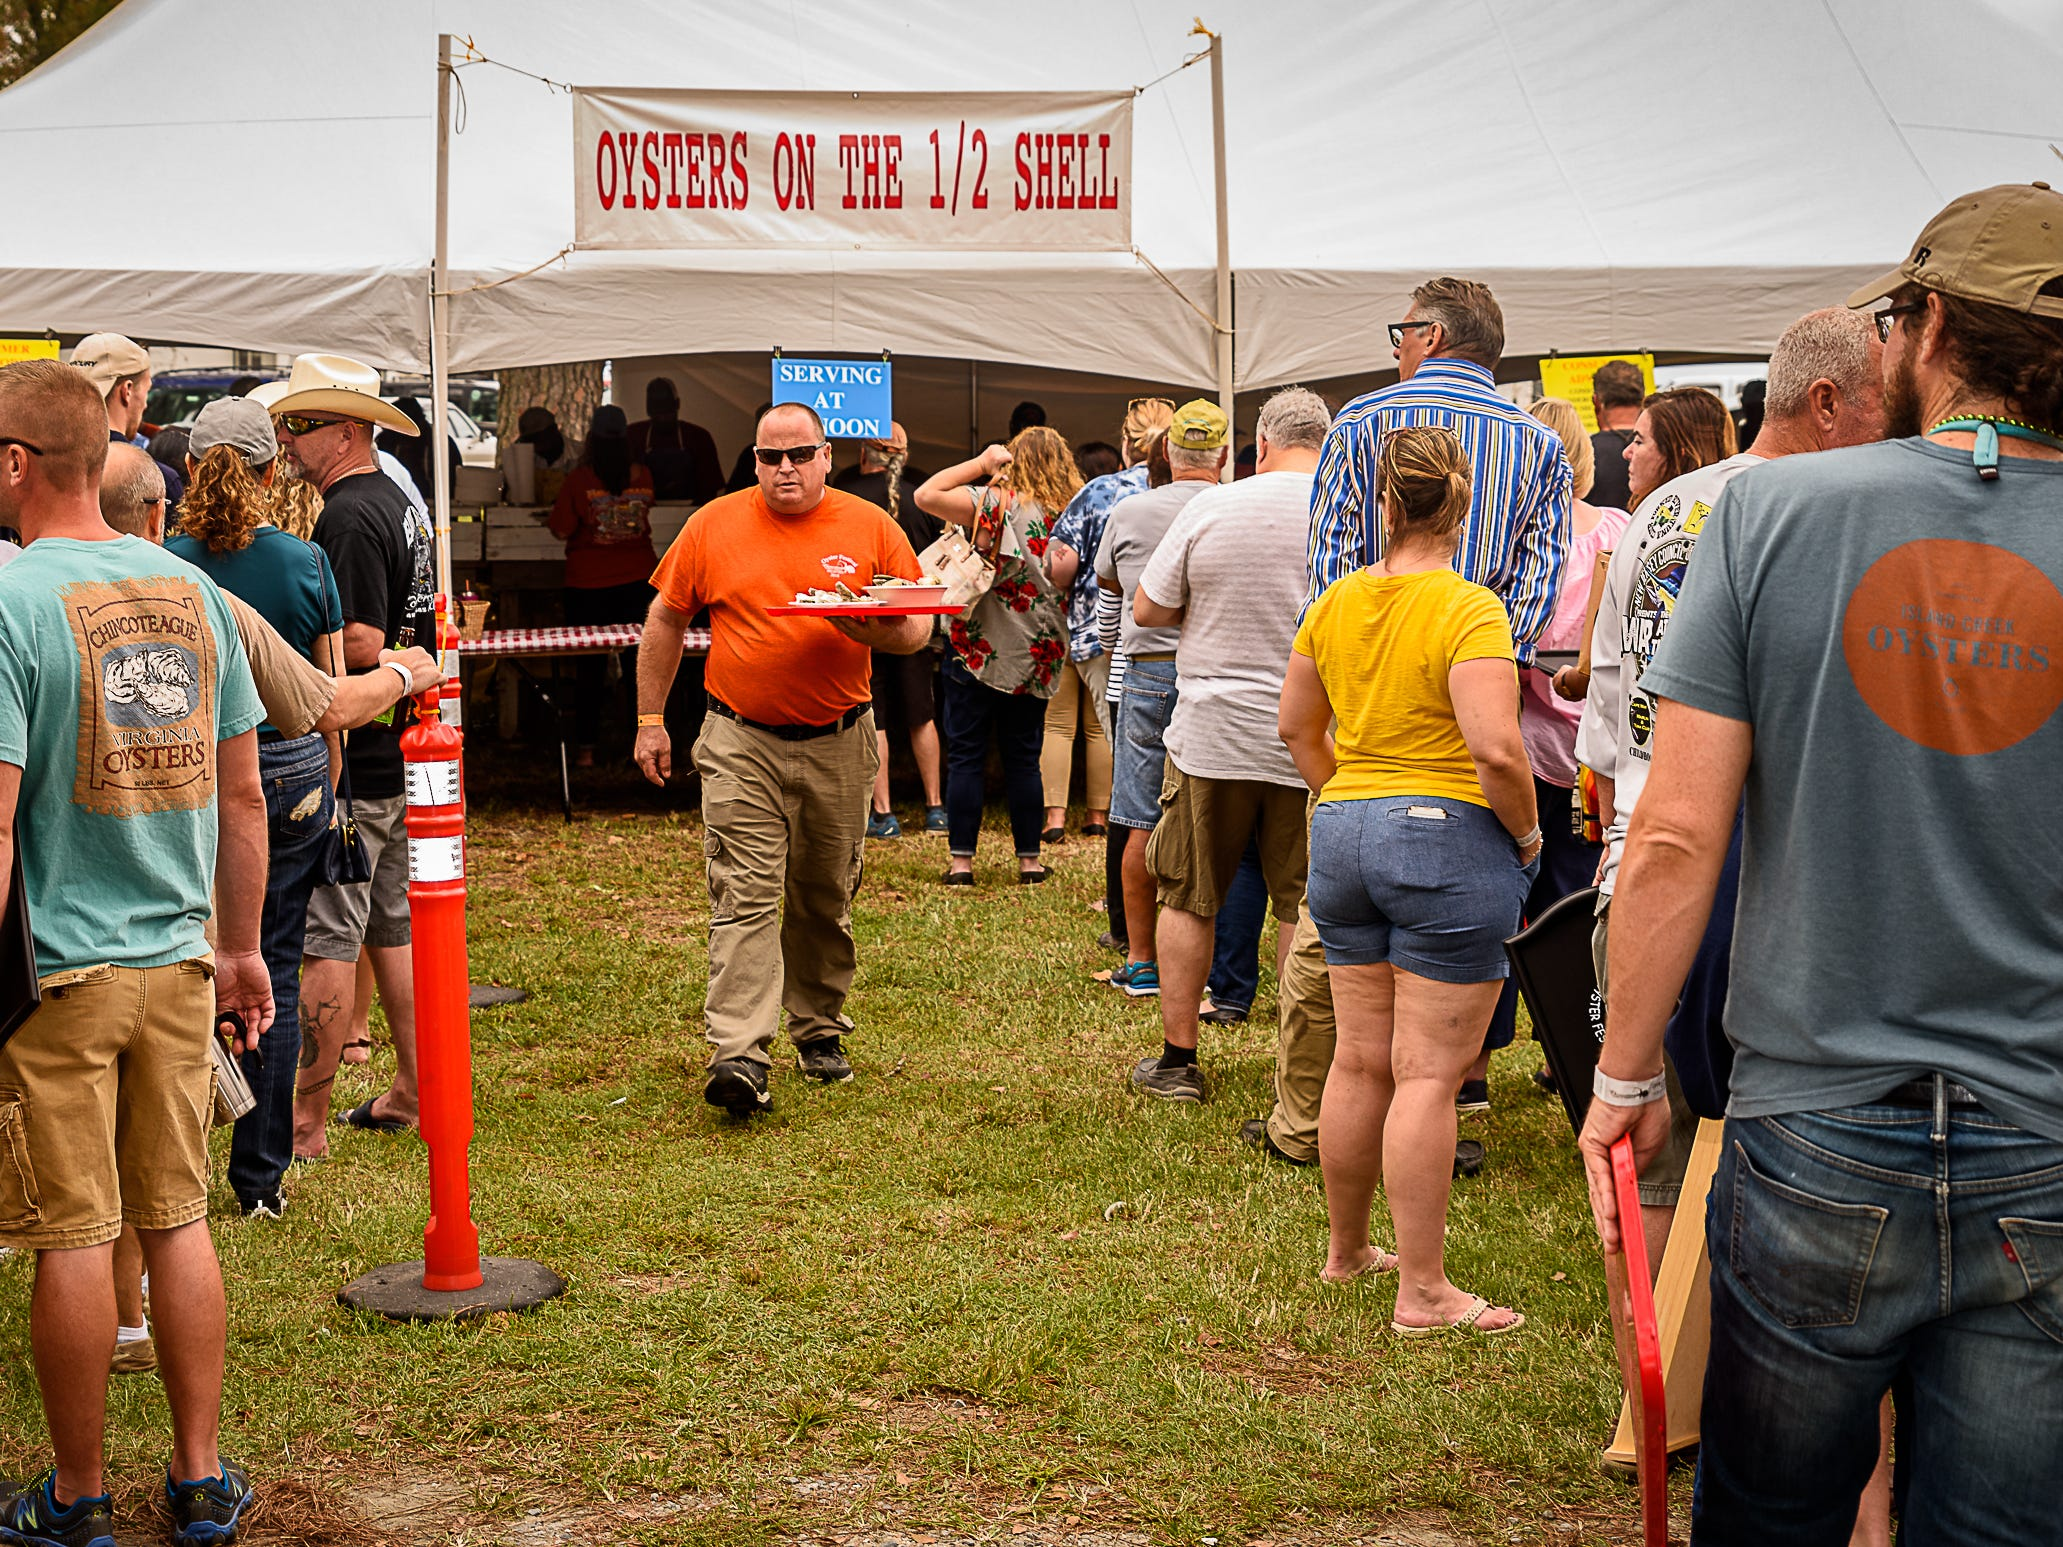 A man leaves with his plate of oysters as others wait patiently in line at Chincoteague Oyster Festival.